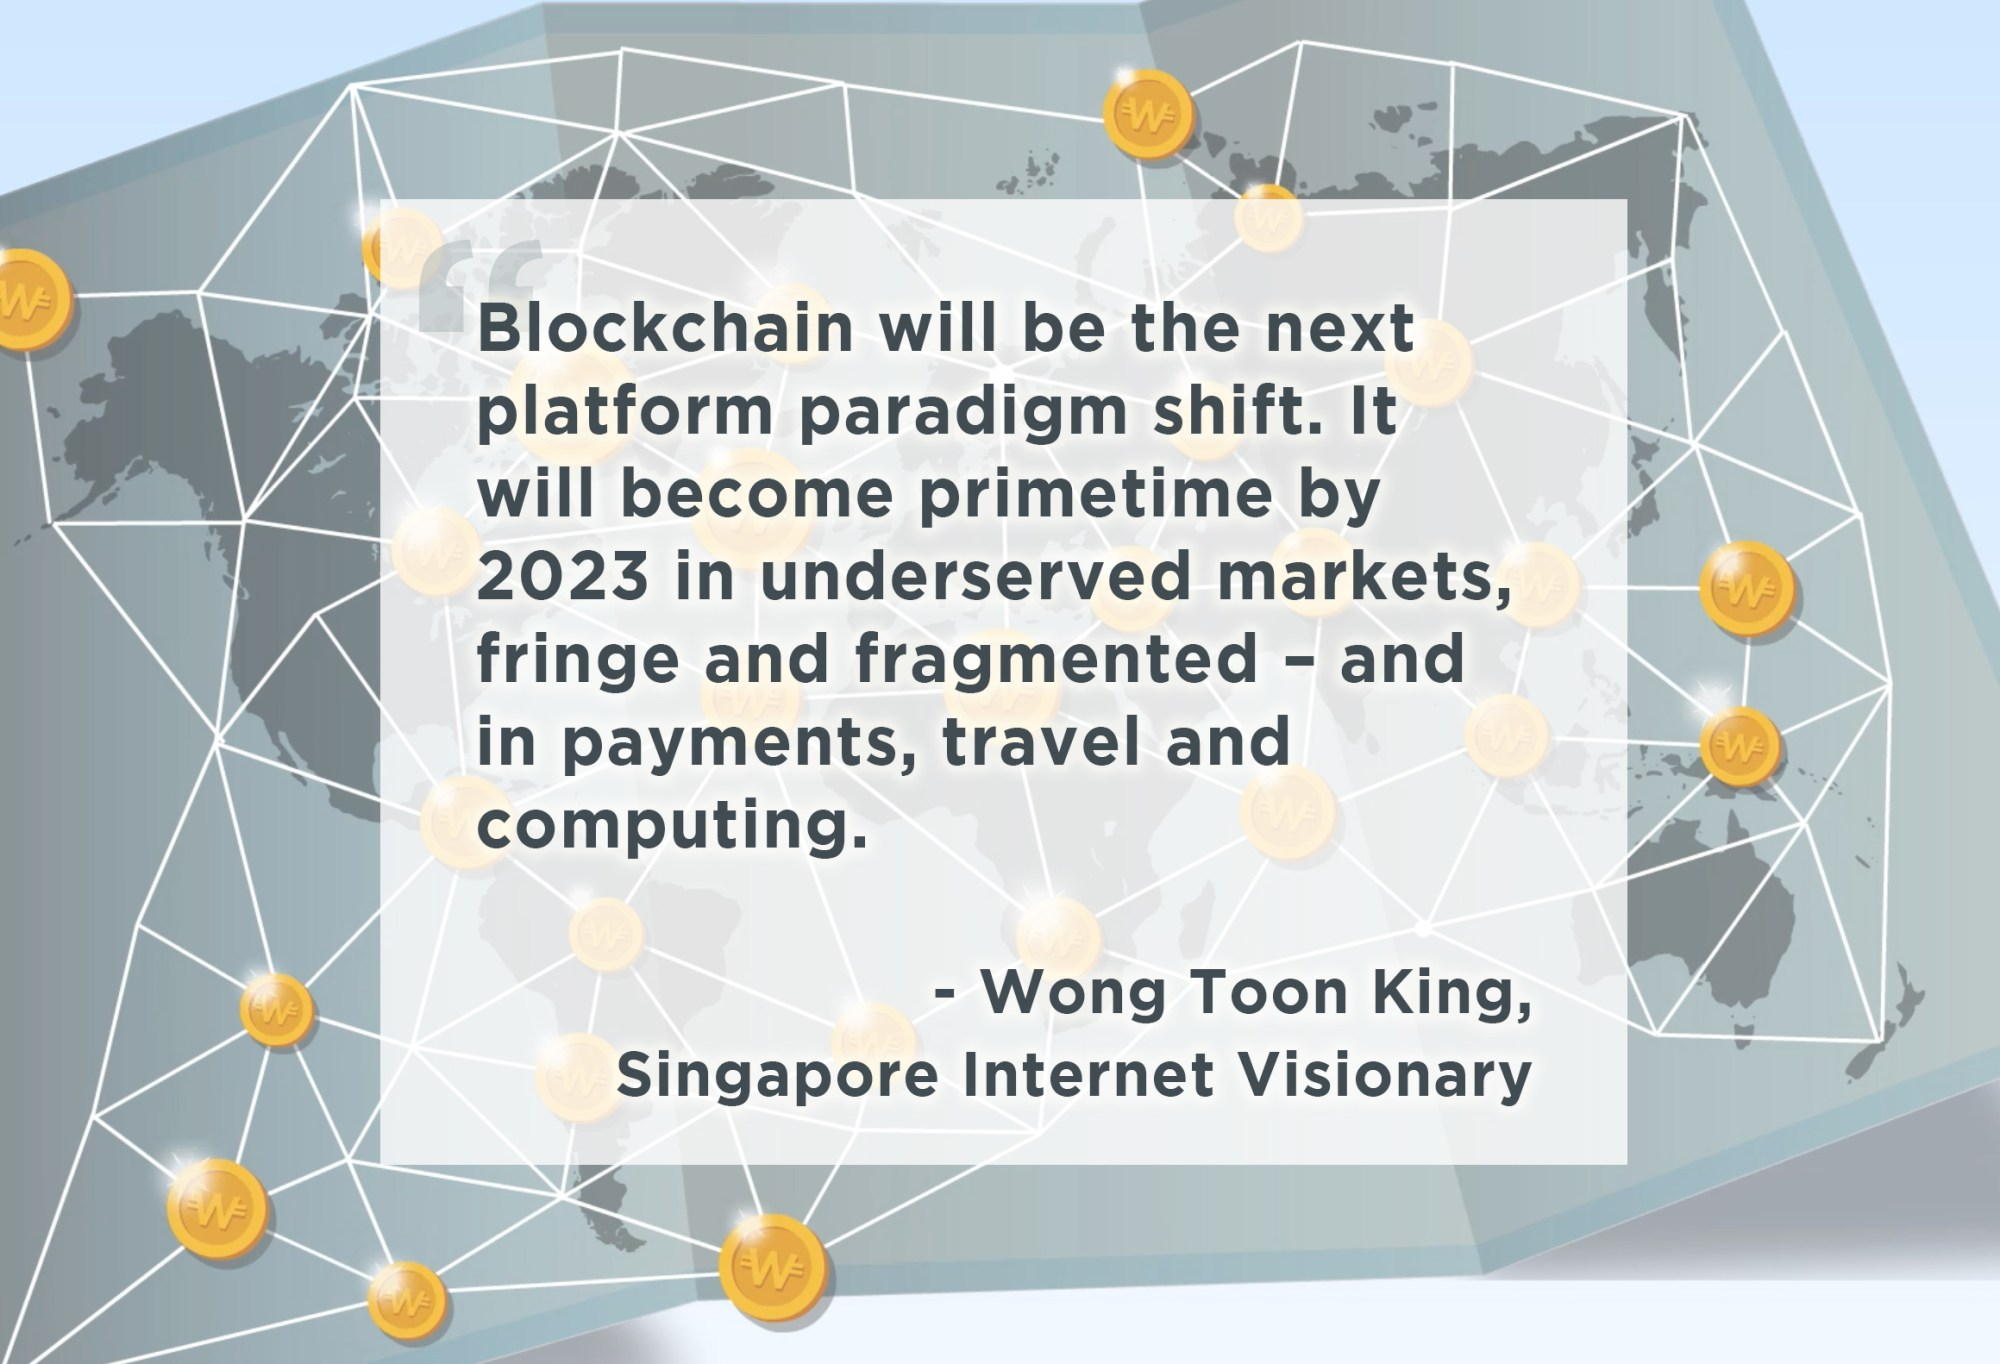 hight resolution of  blockchain is the new internet says singapore internet visionary wong toon king what do you think